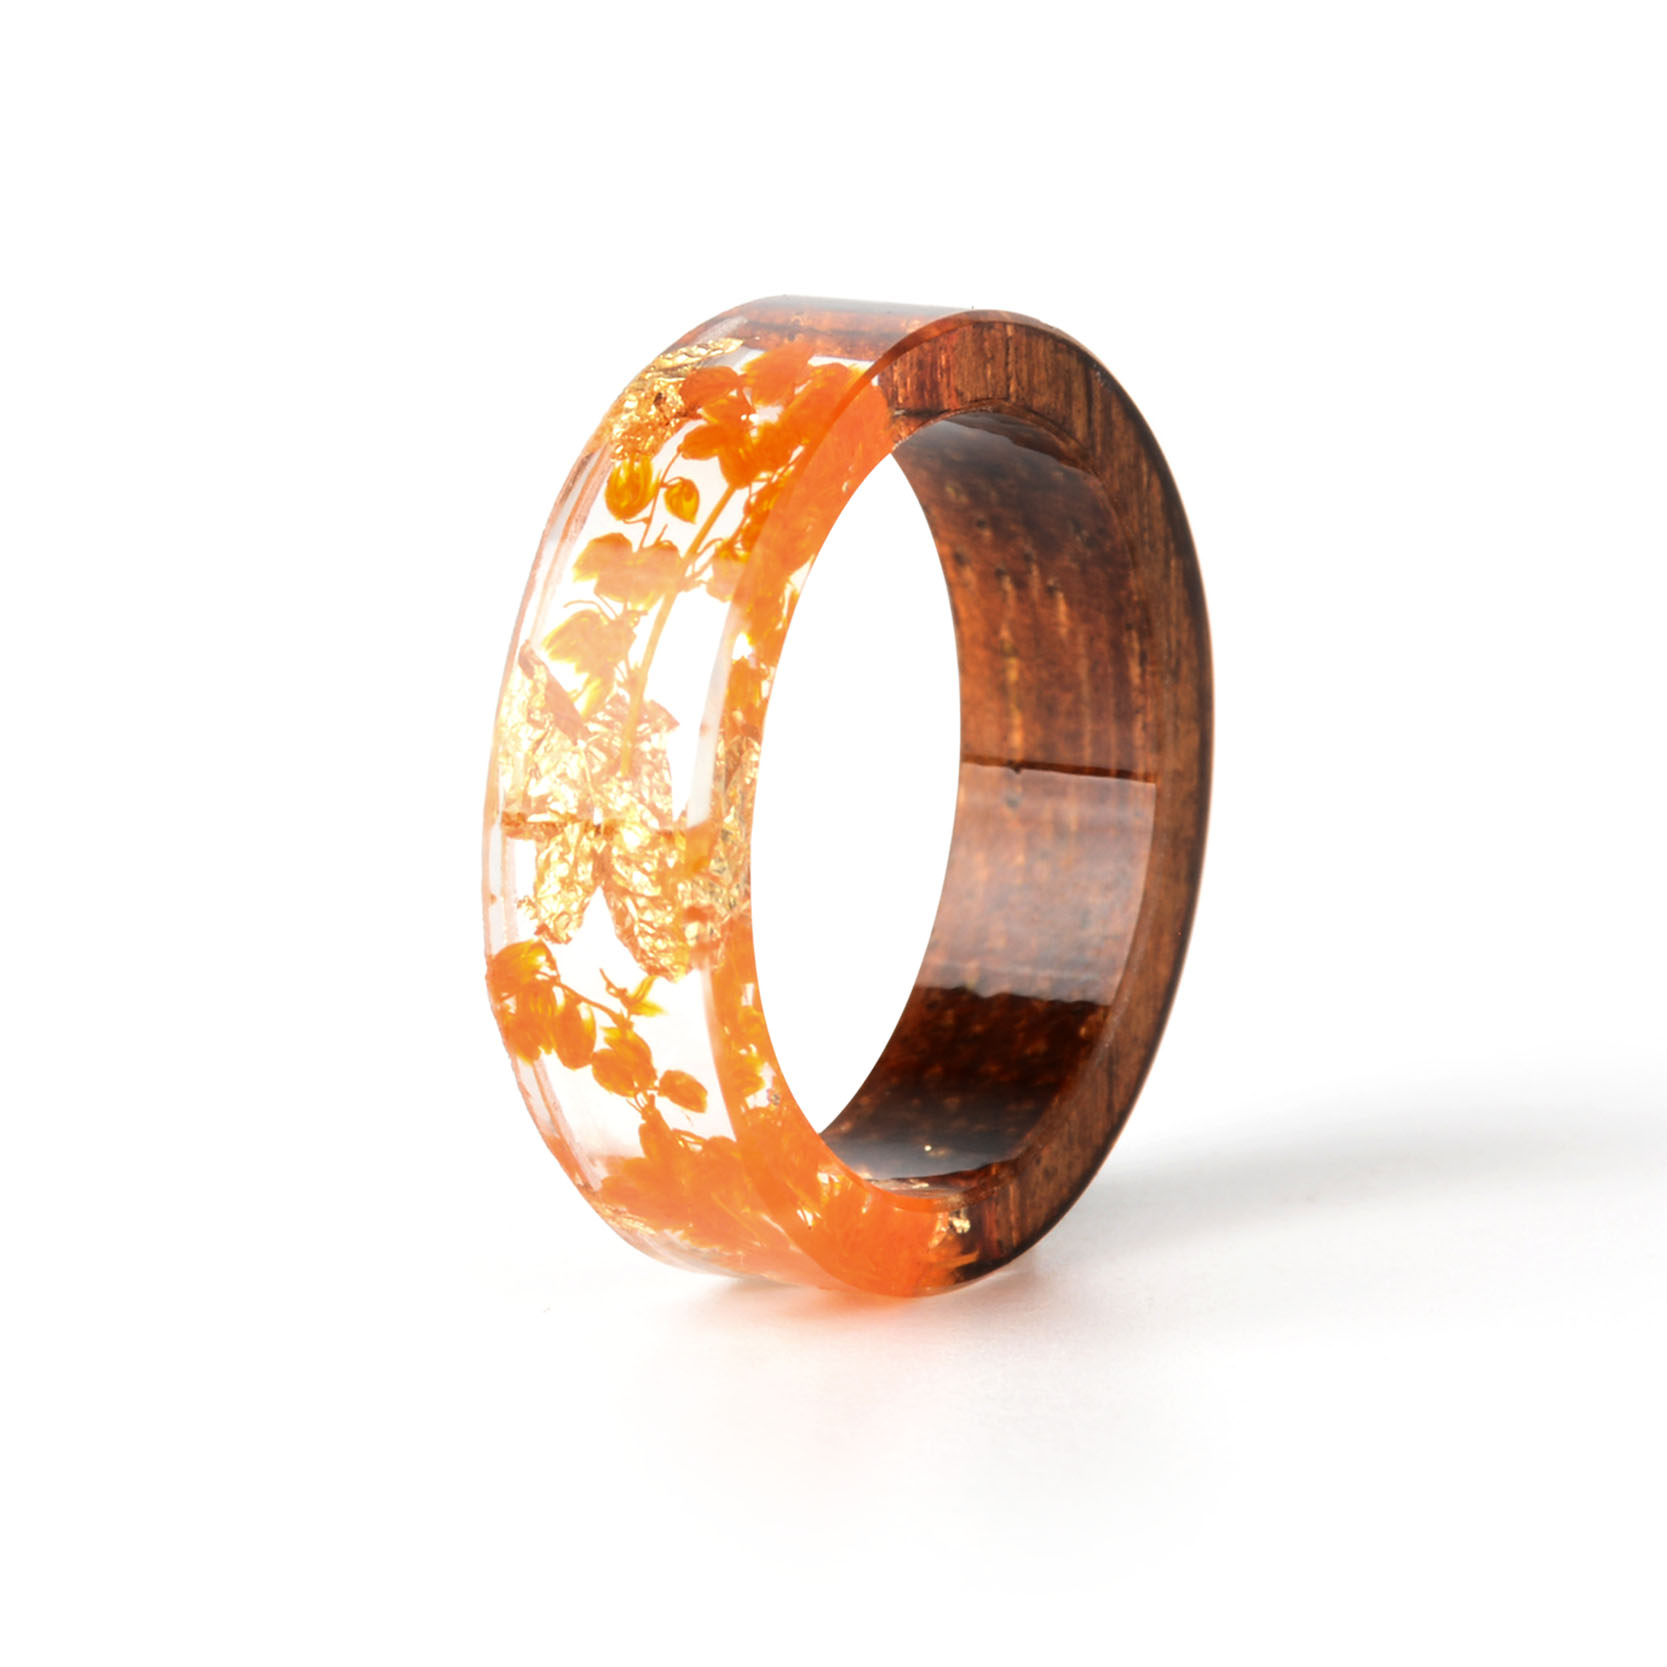 HTB1aoN9BZyYBuNkSnfoq6AWgVXad - Hot Sale Handmade Wood Resin Ring Dried Flowers Plants Inside Jewelry Resin Ring Transparent Anniversary Ring for Women